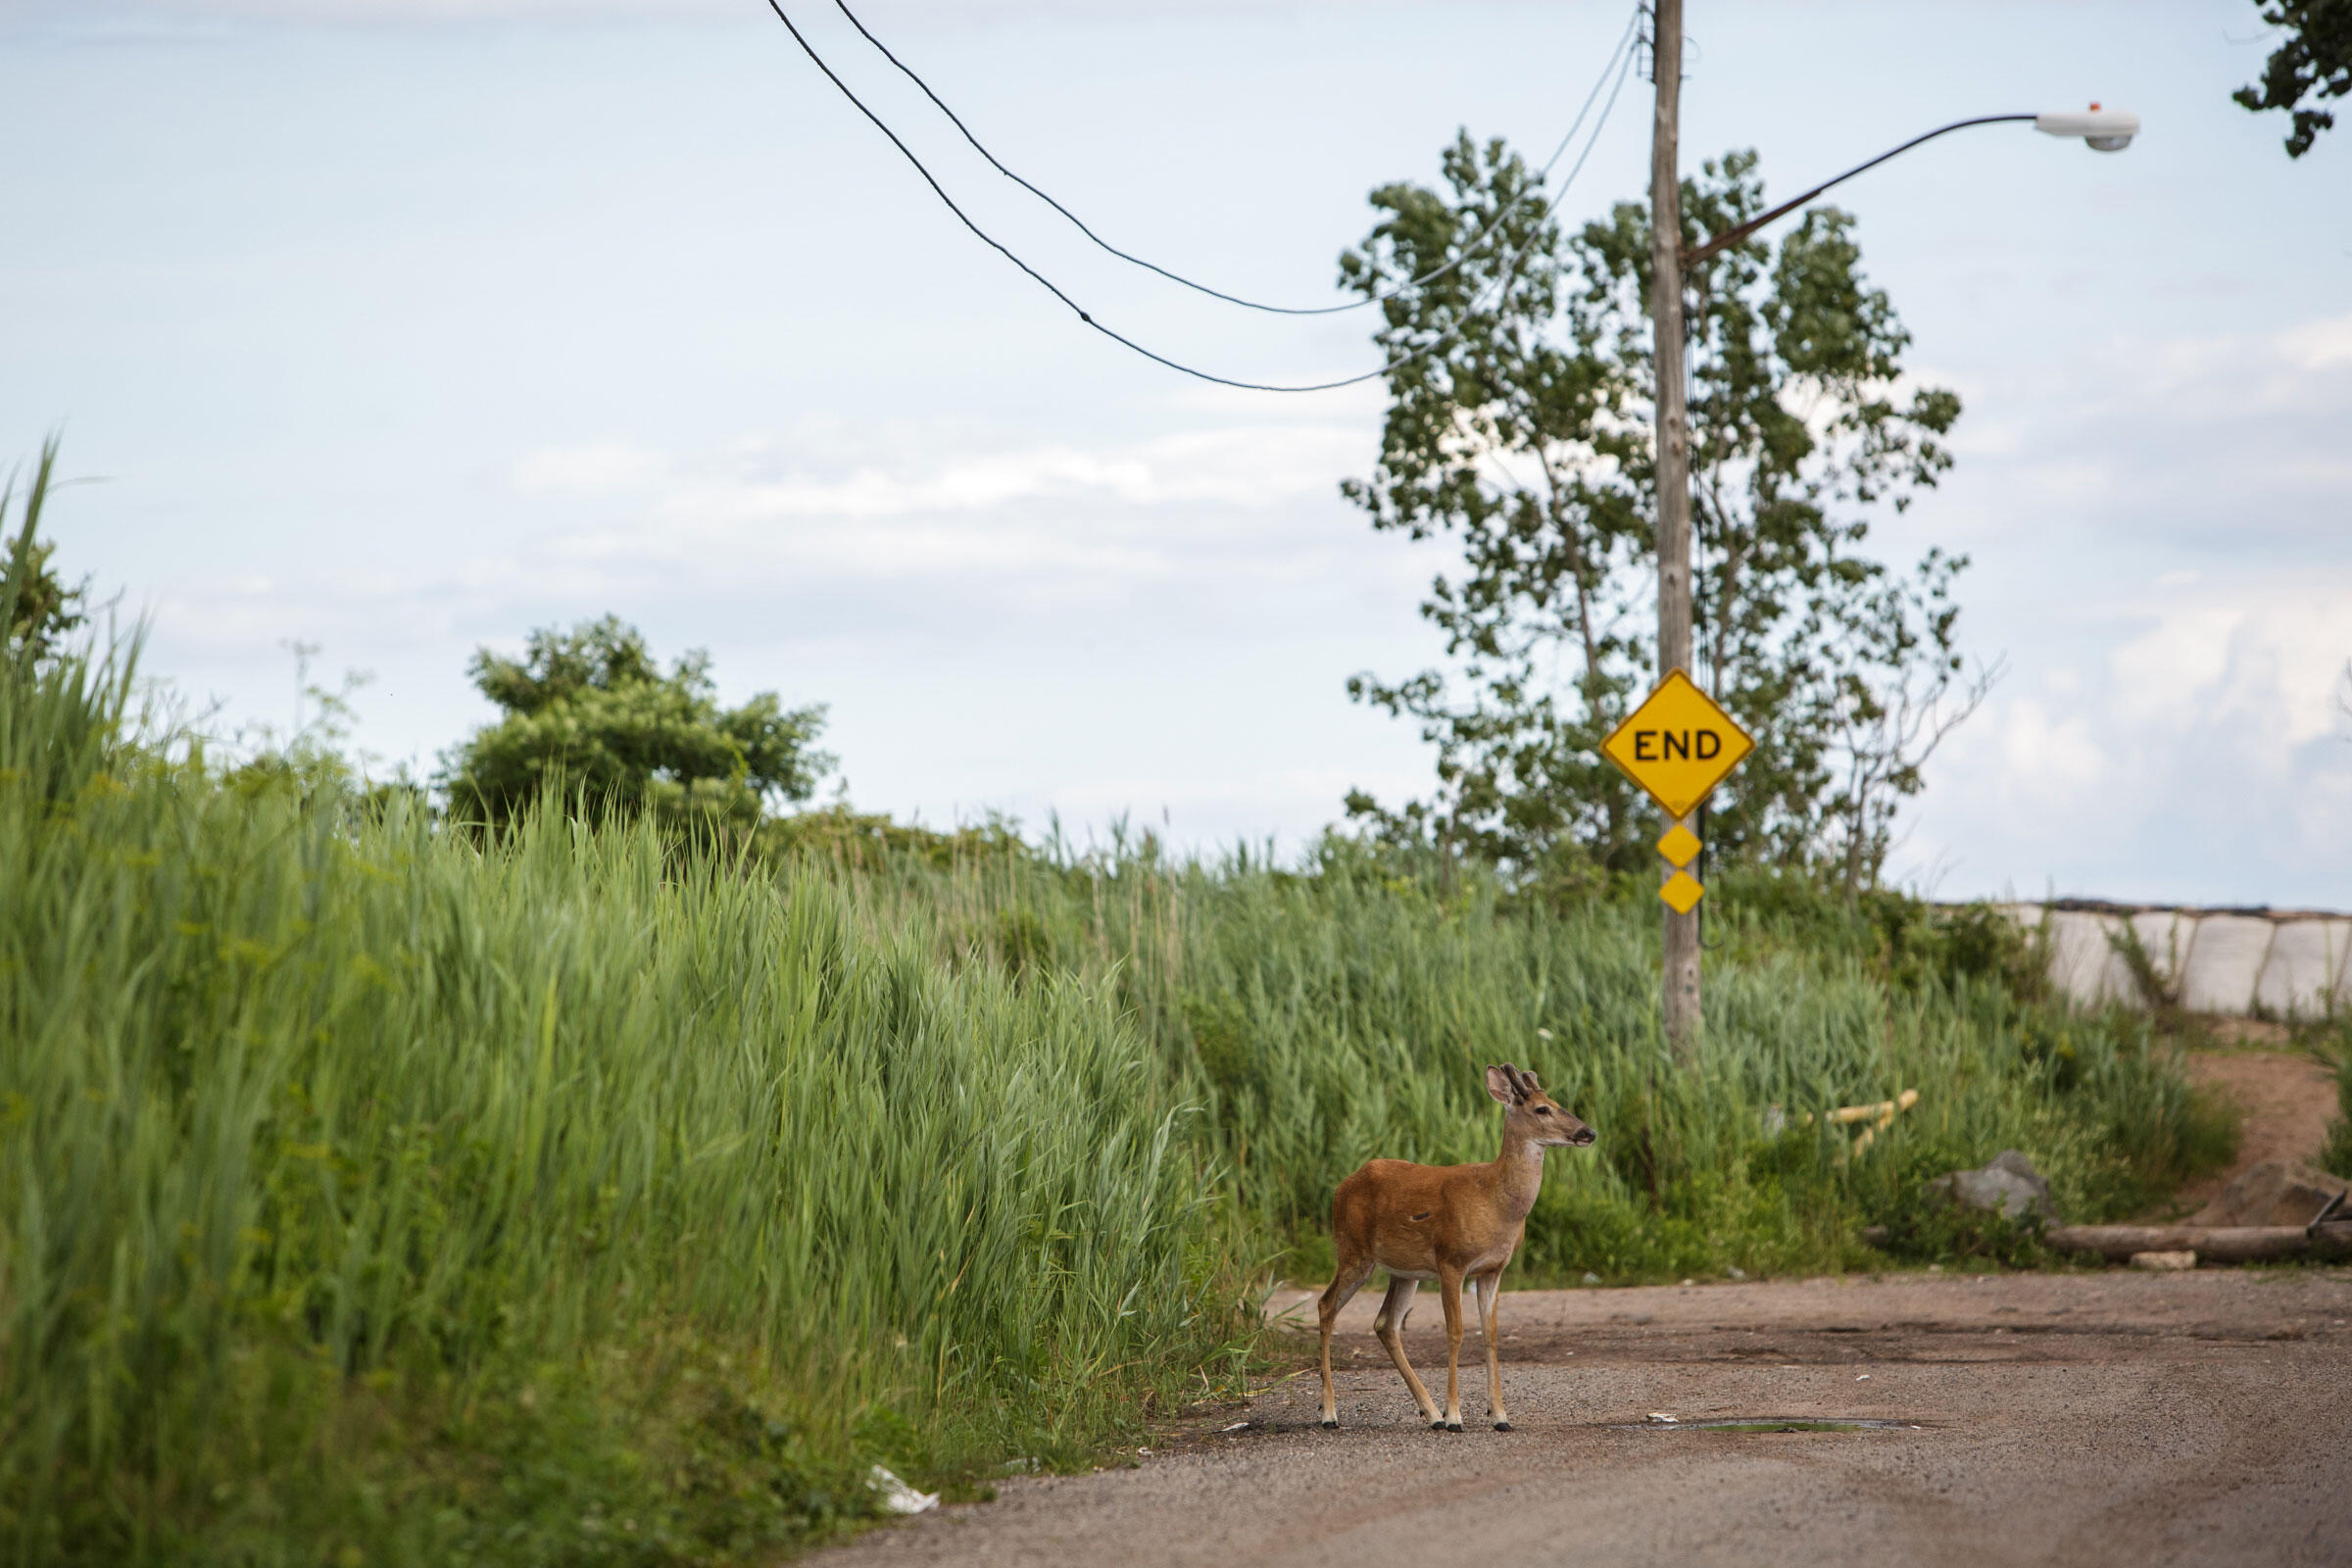 A White-tailed Deer emerges from the overgrown marshland that was a yard four years ago. Kissam Avenue, Oakwood Beach, Staten Island. July 10, 2016. Hillary Eggers